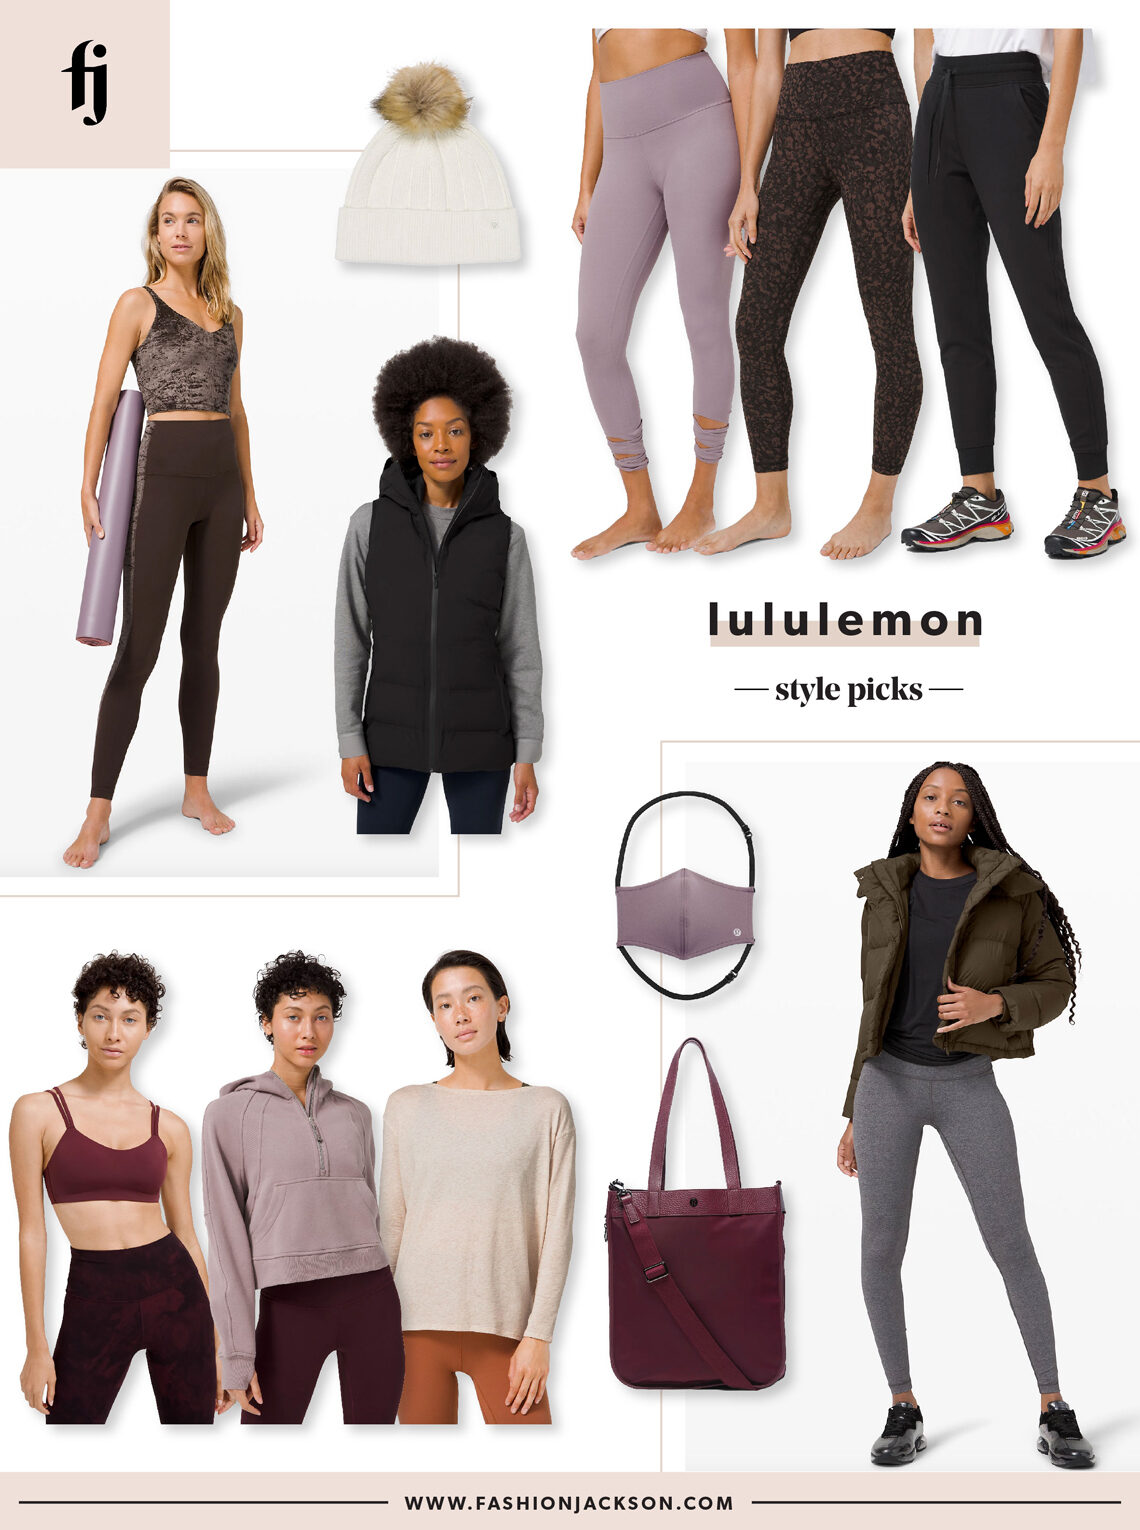 Fashion Jackson lululemon style picks 11.18.20